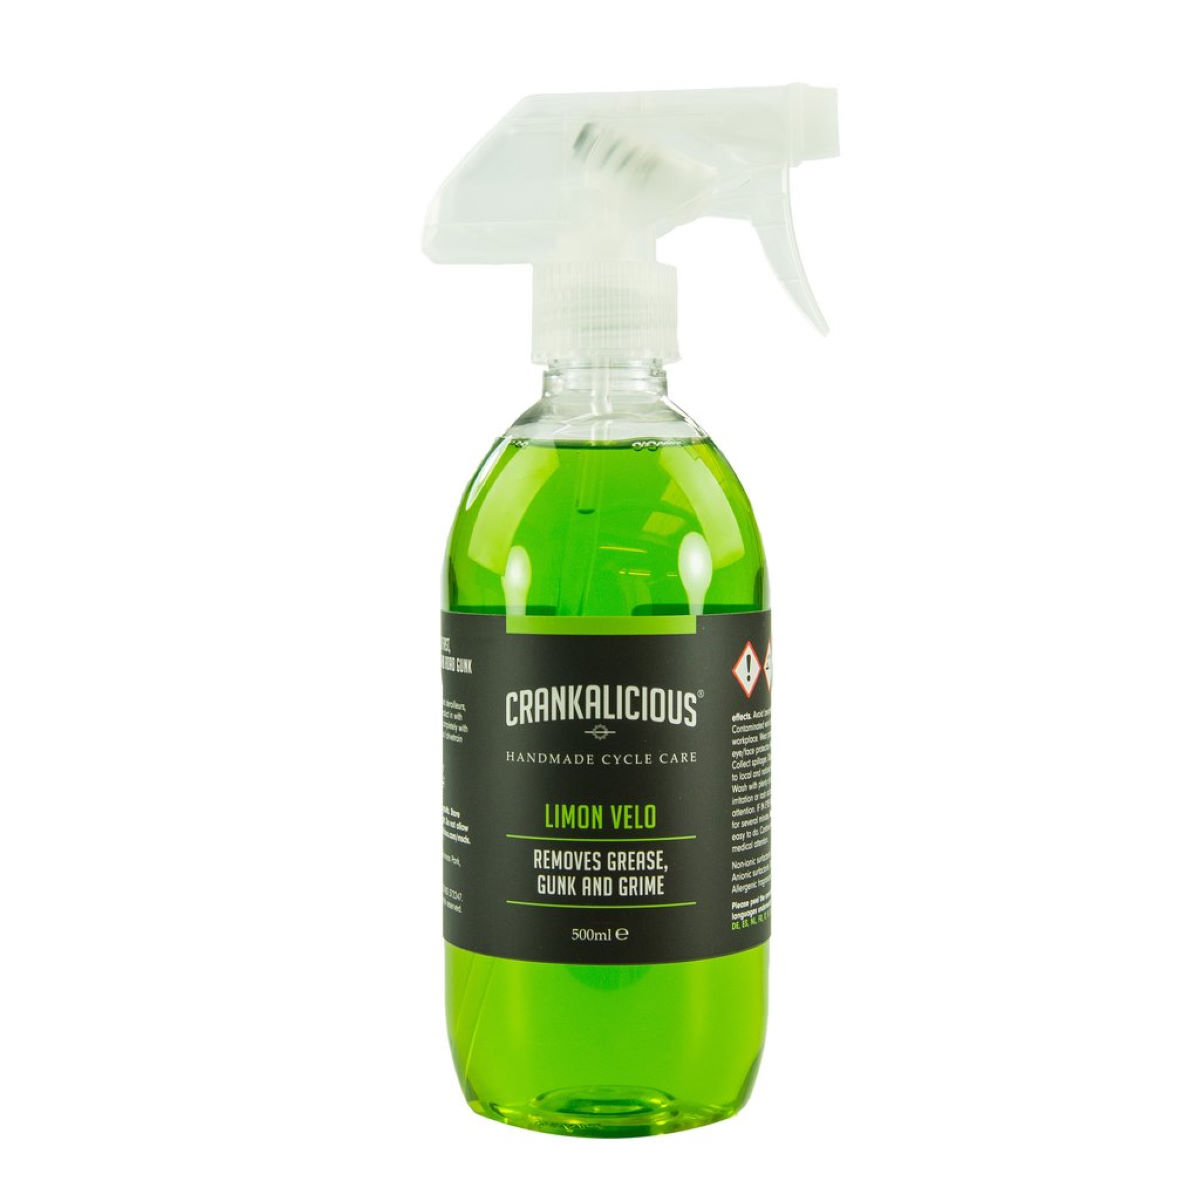 Crankalicious Limon Velo 500ml Degreaser Spray  One Size - Productos de limpieza